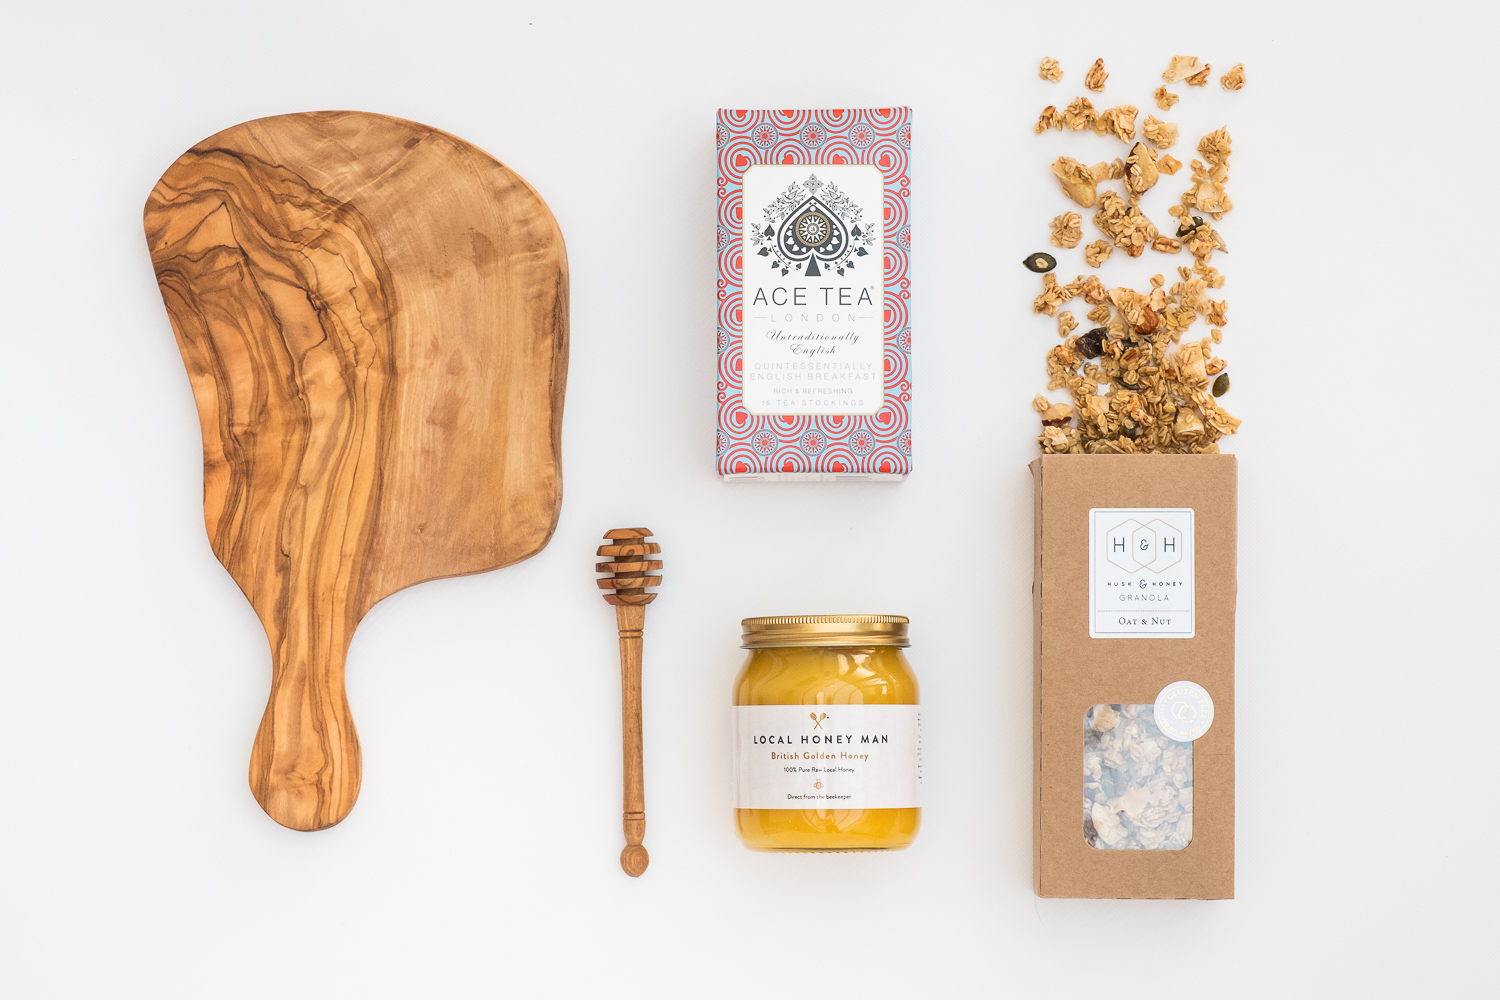 Product photography for The Gift Maker